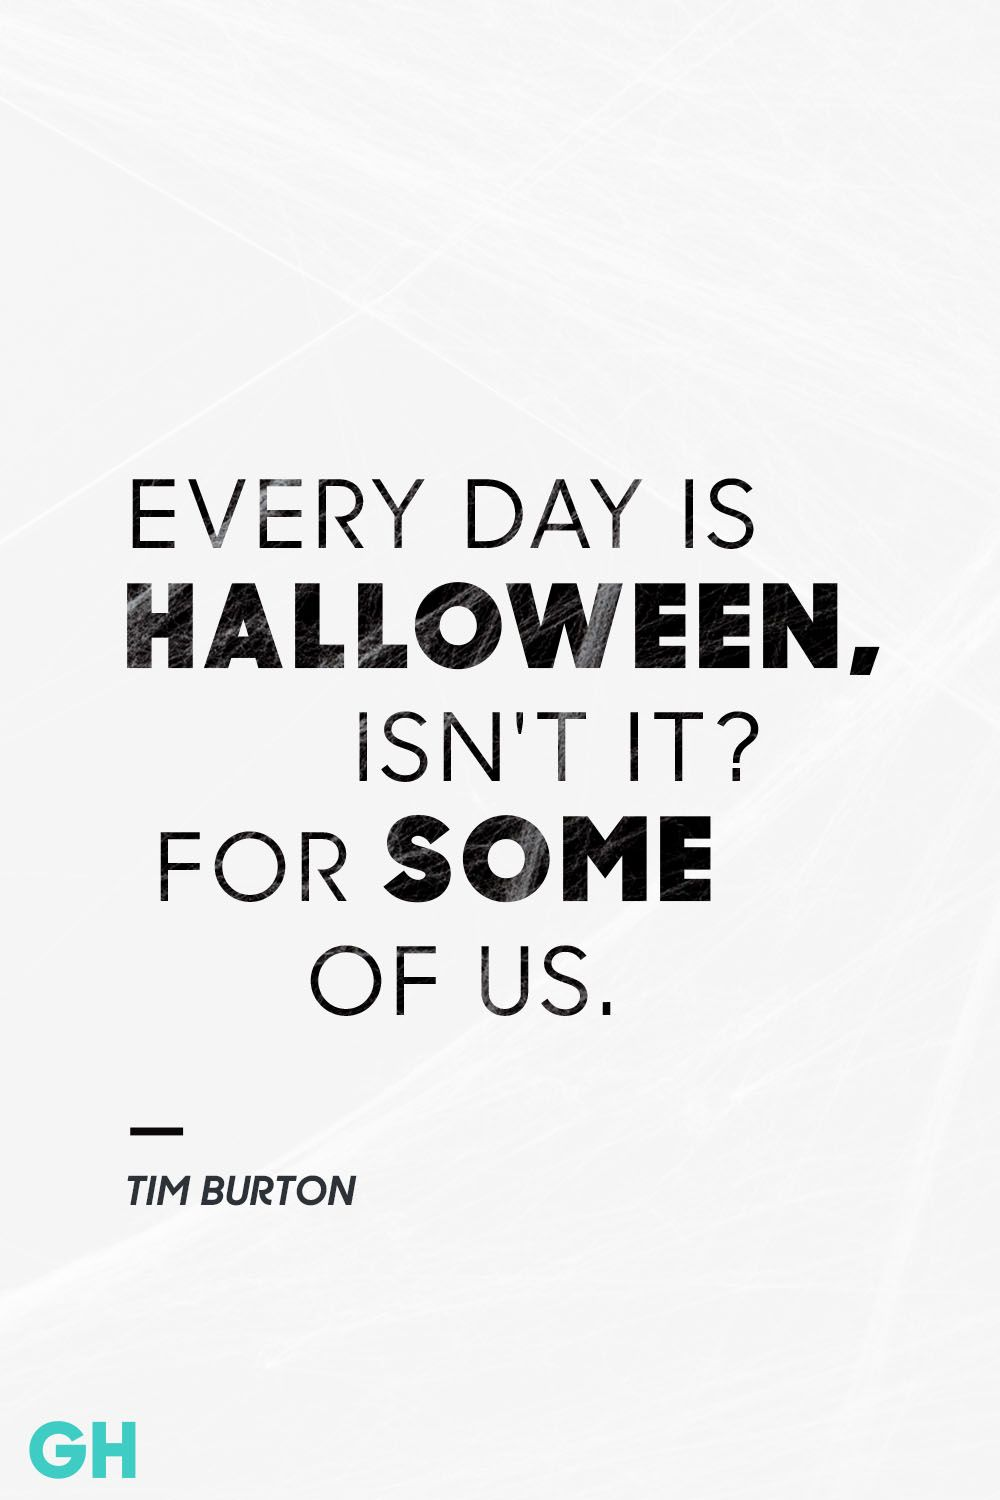 Halloween Quotes 25 Spooky Halloween Quotes   Best Halloween Sayings Halloween Quotes